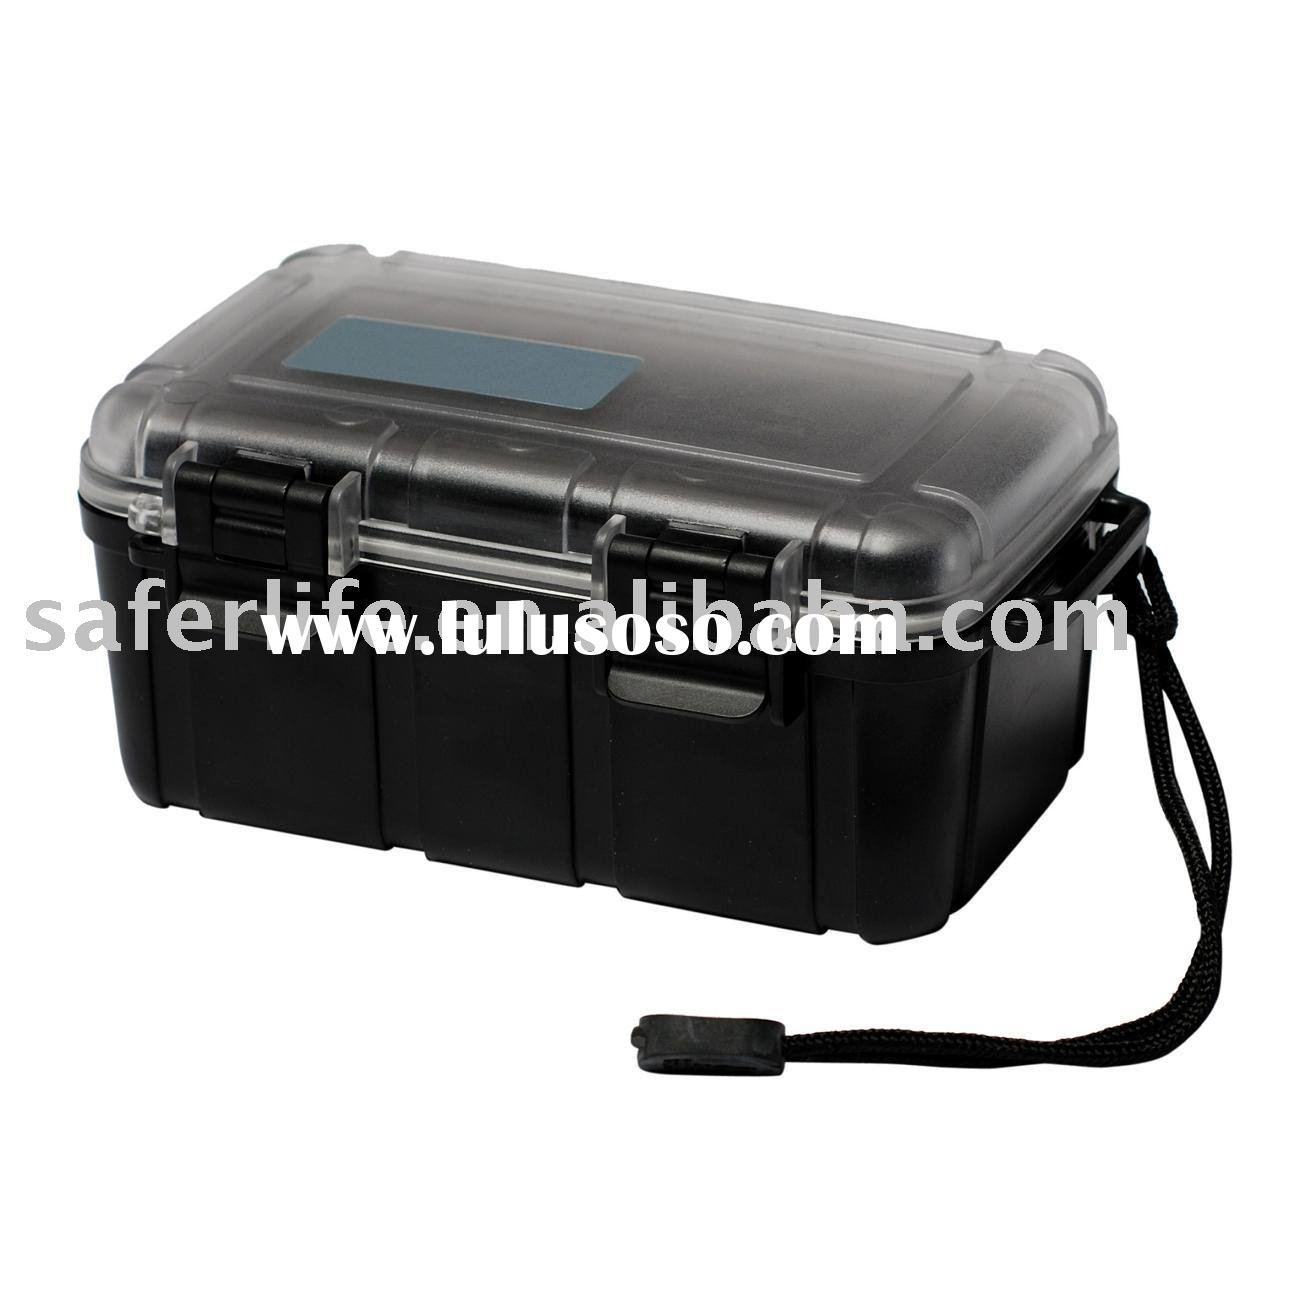 Delux waterproof box Camping box Promotional imprinted WATCH BOX tool box Outdoor tool box